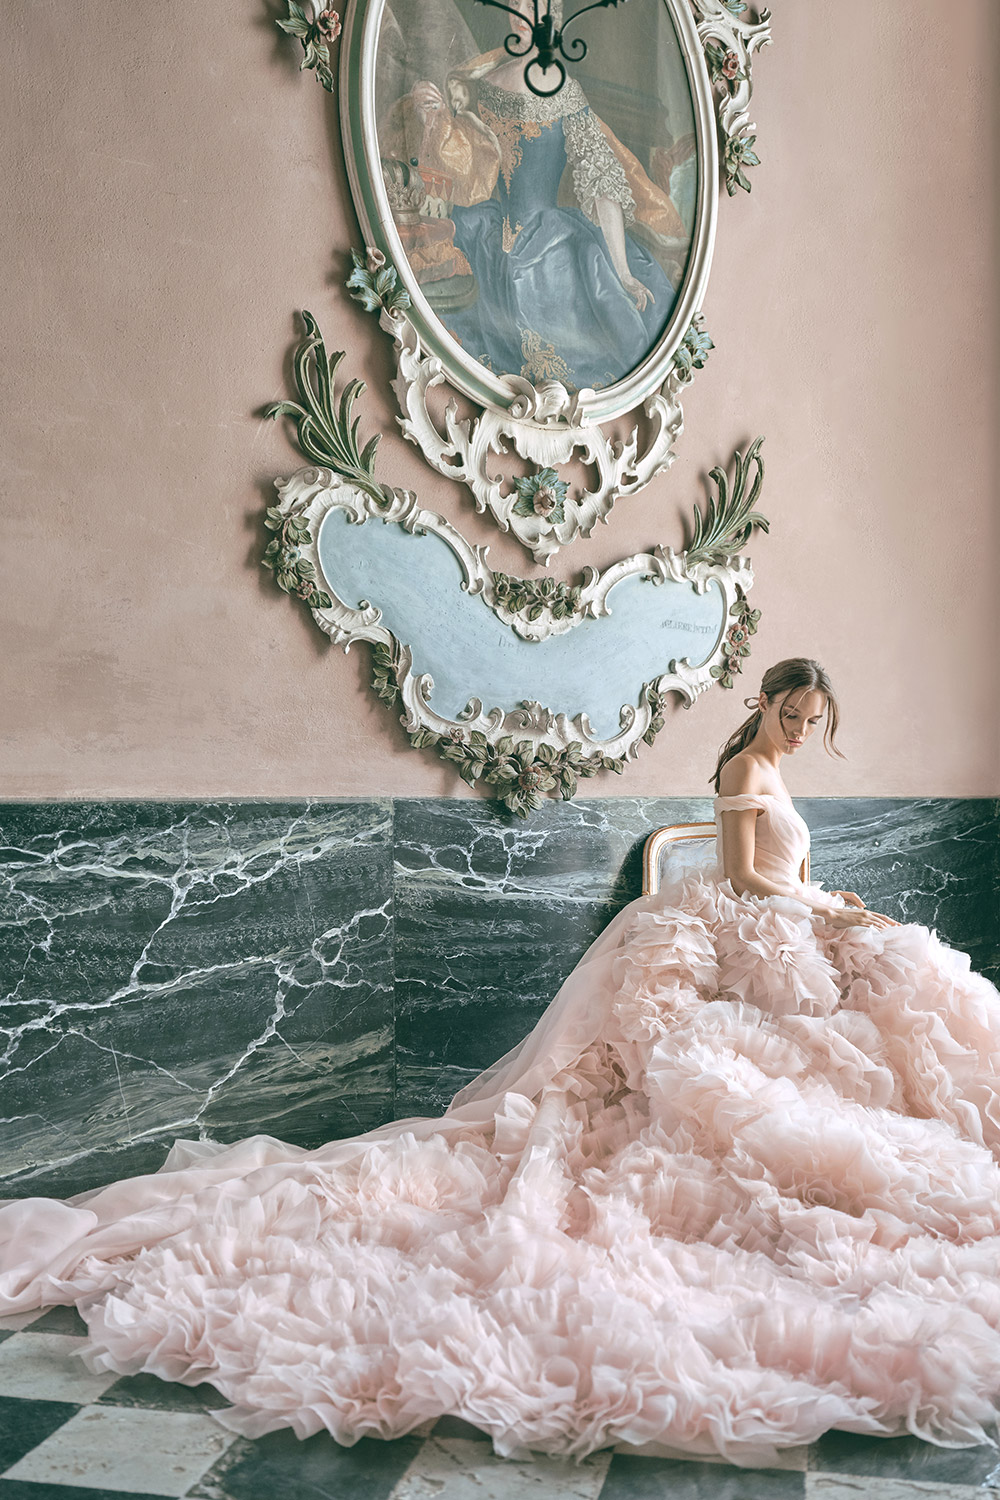 SecretGarden - Monique Lhuillier Fall 2020 Bridal Collection. www.theweddingnotebook.com